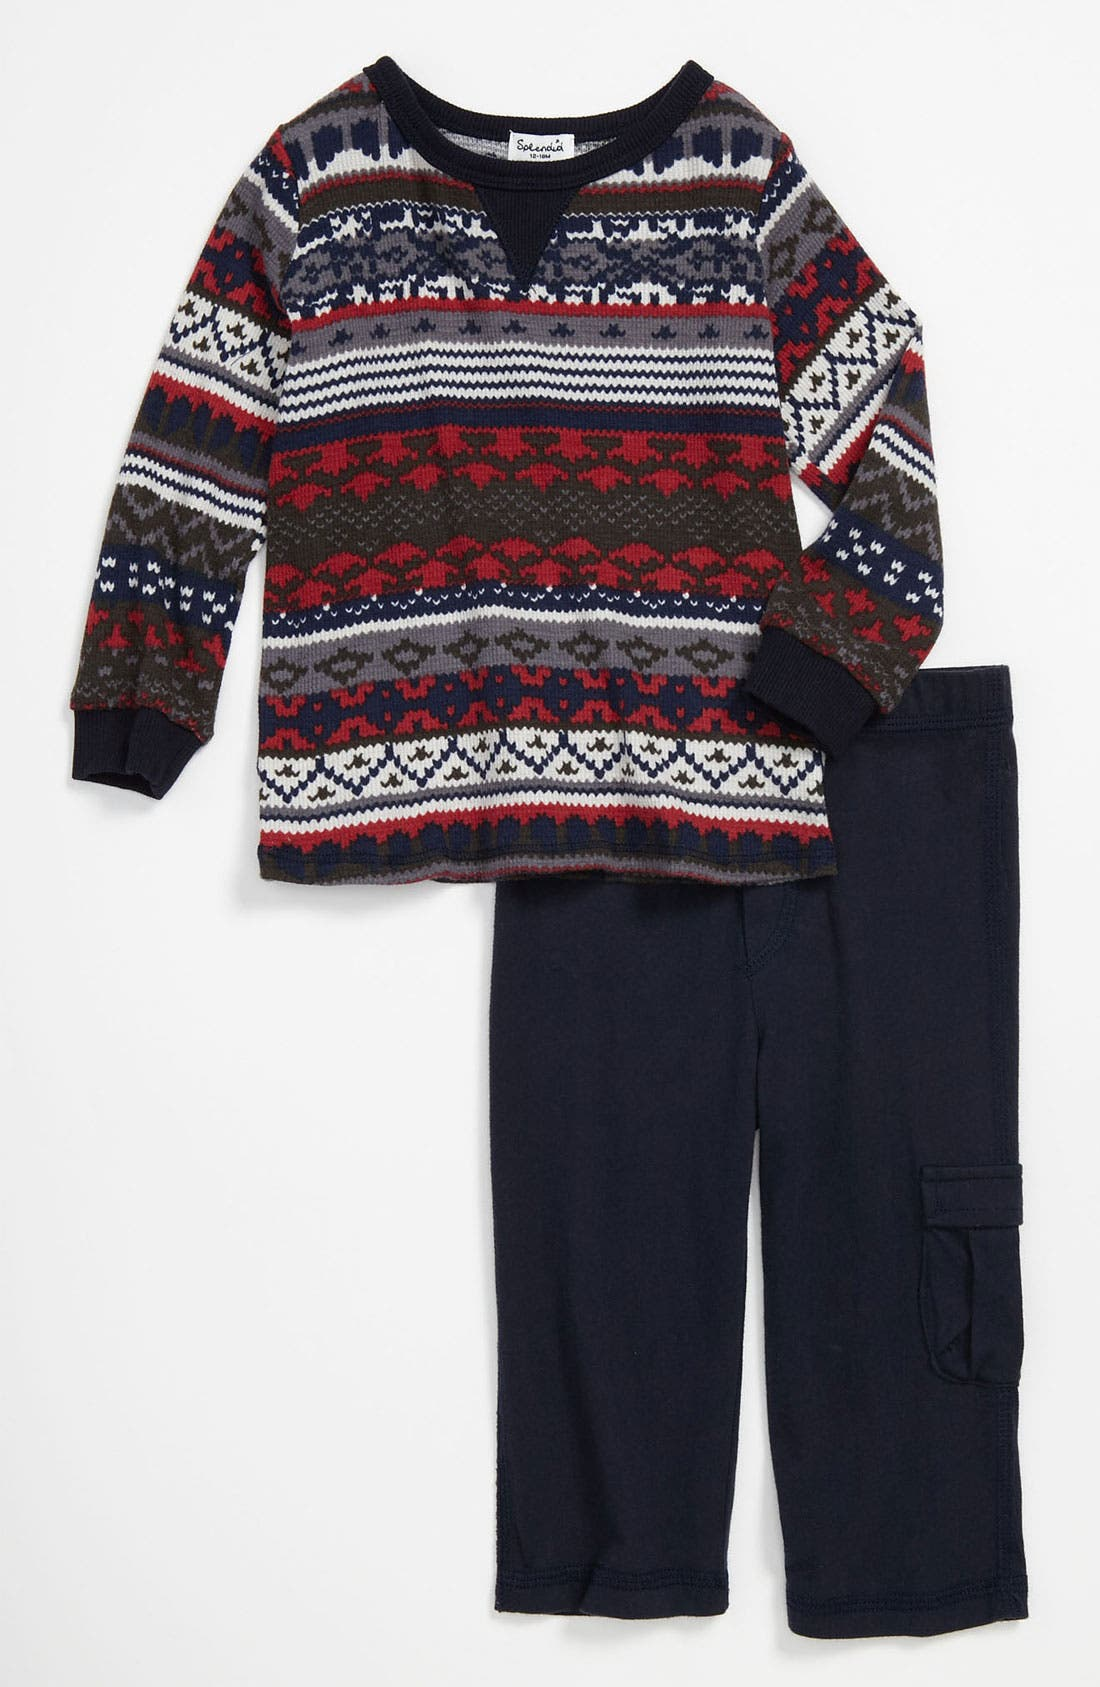 Alternate Image 1 Selected - Splendid 'Breckenridge' Thermal Top & Pants (Infant)